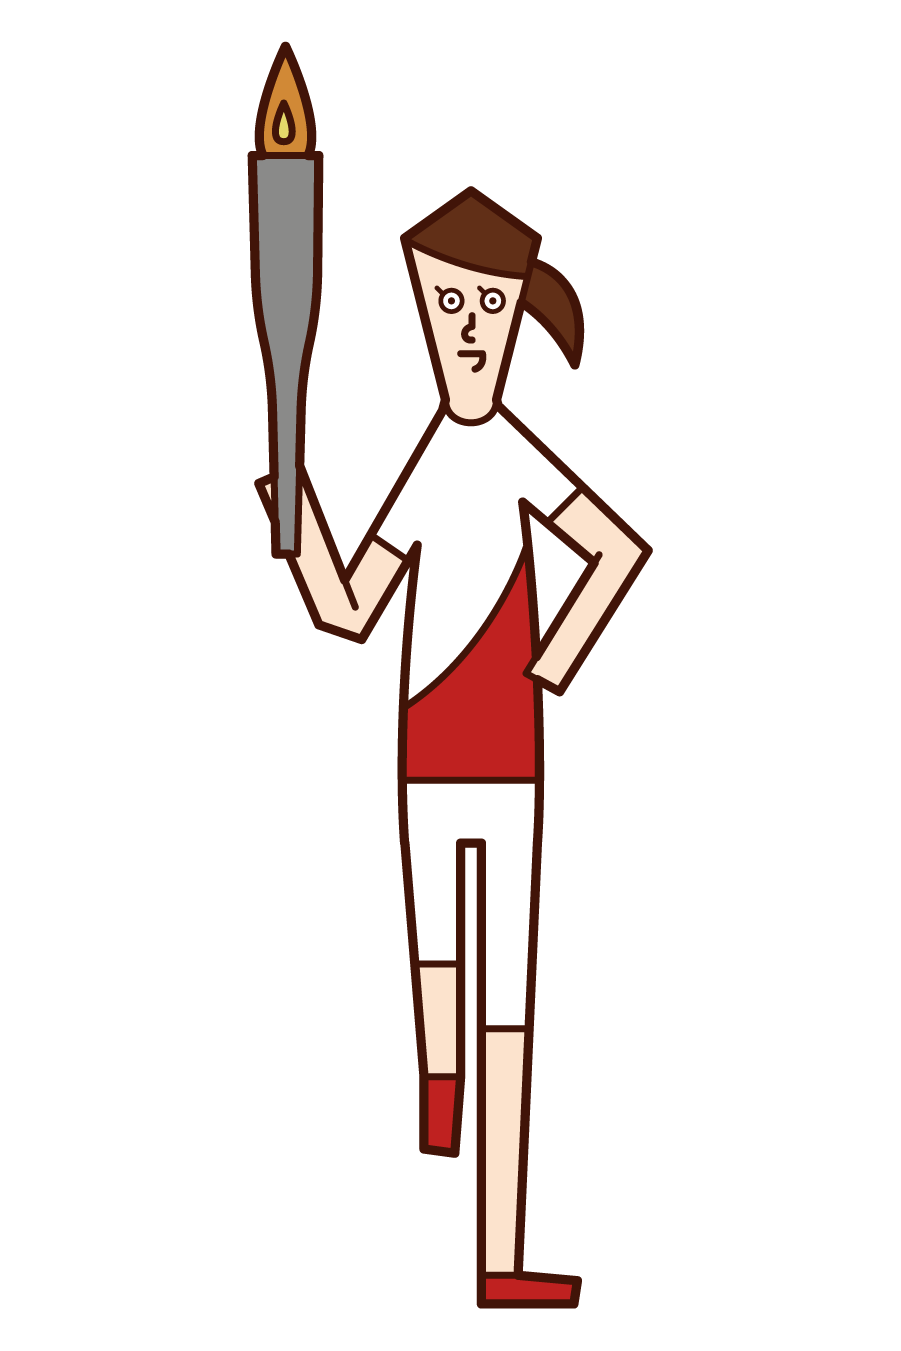 Illustration of a torch runner (female) seen from the front